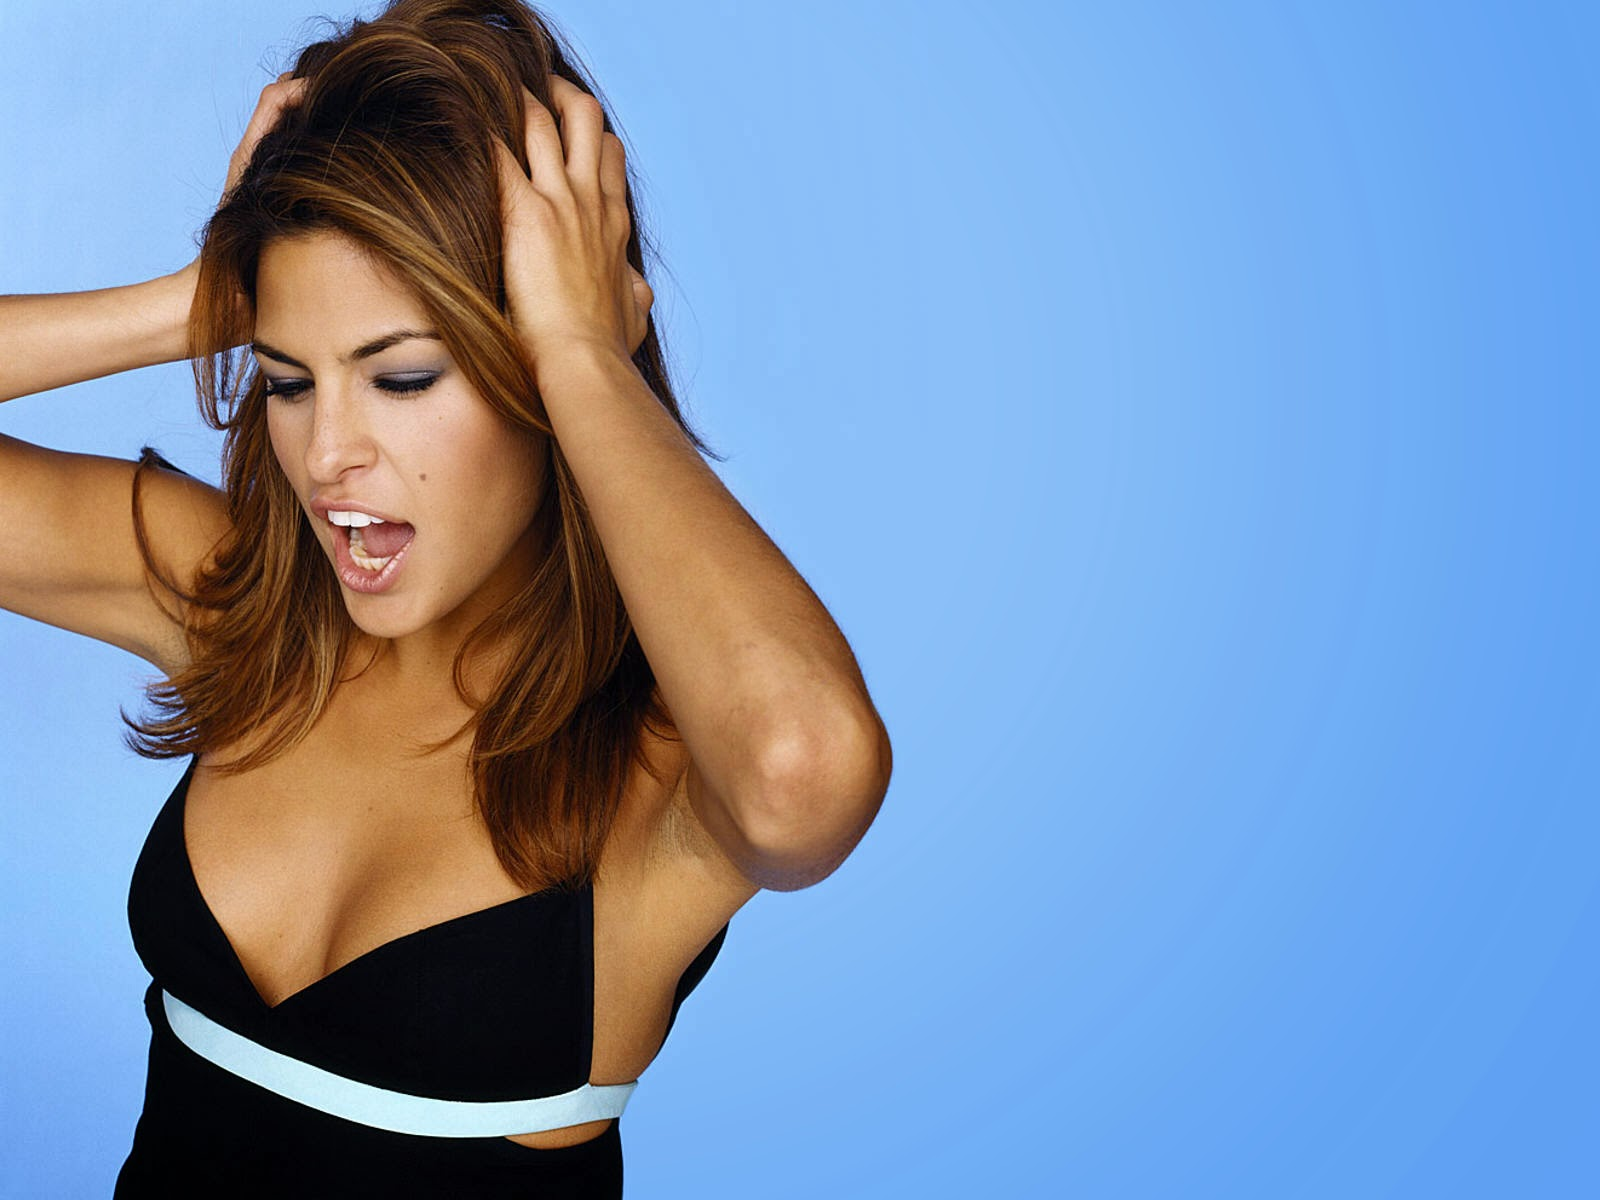 Eva mendes nice good pose in blue cloth wallpaper